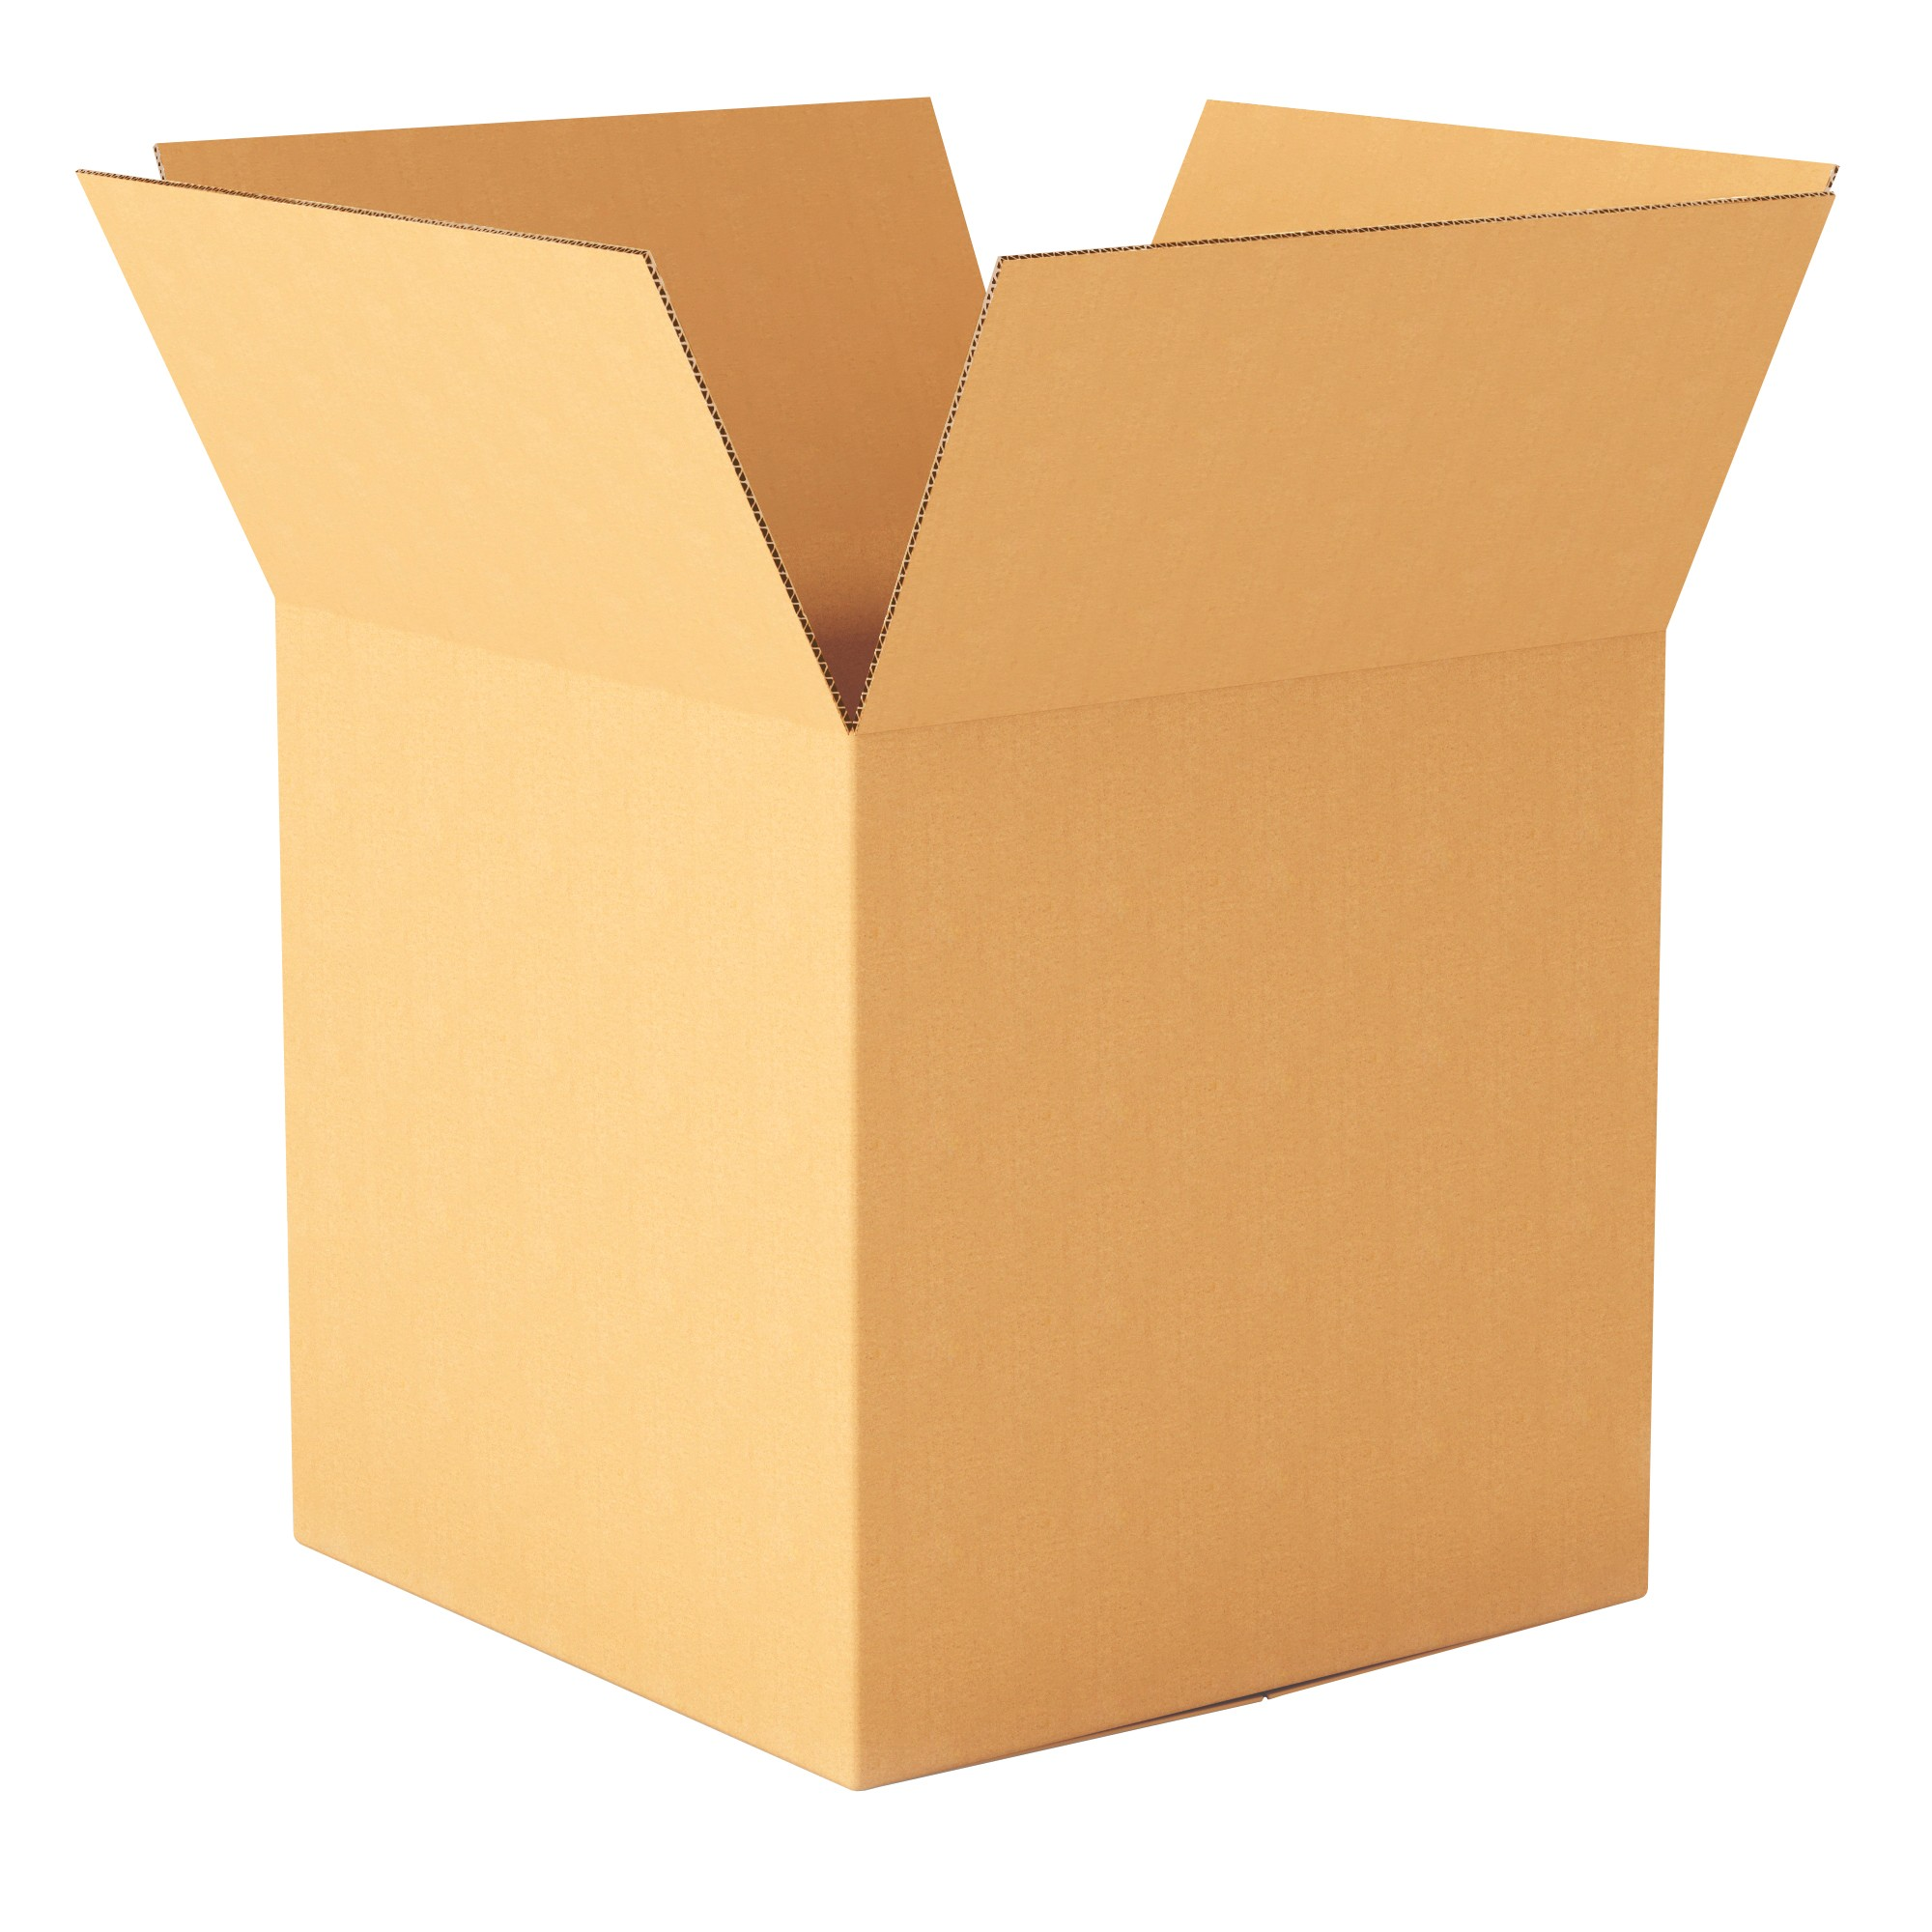 """TOTALPACK® 10 x 10 x 10"""" Single Wall Corrugated """"Printed This Side Up"""" Boxes 25 Units"""